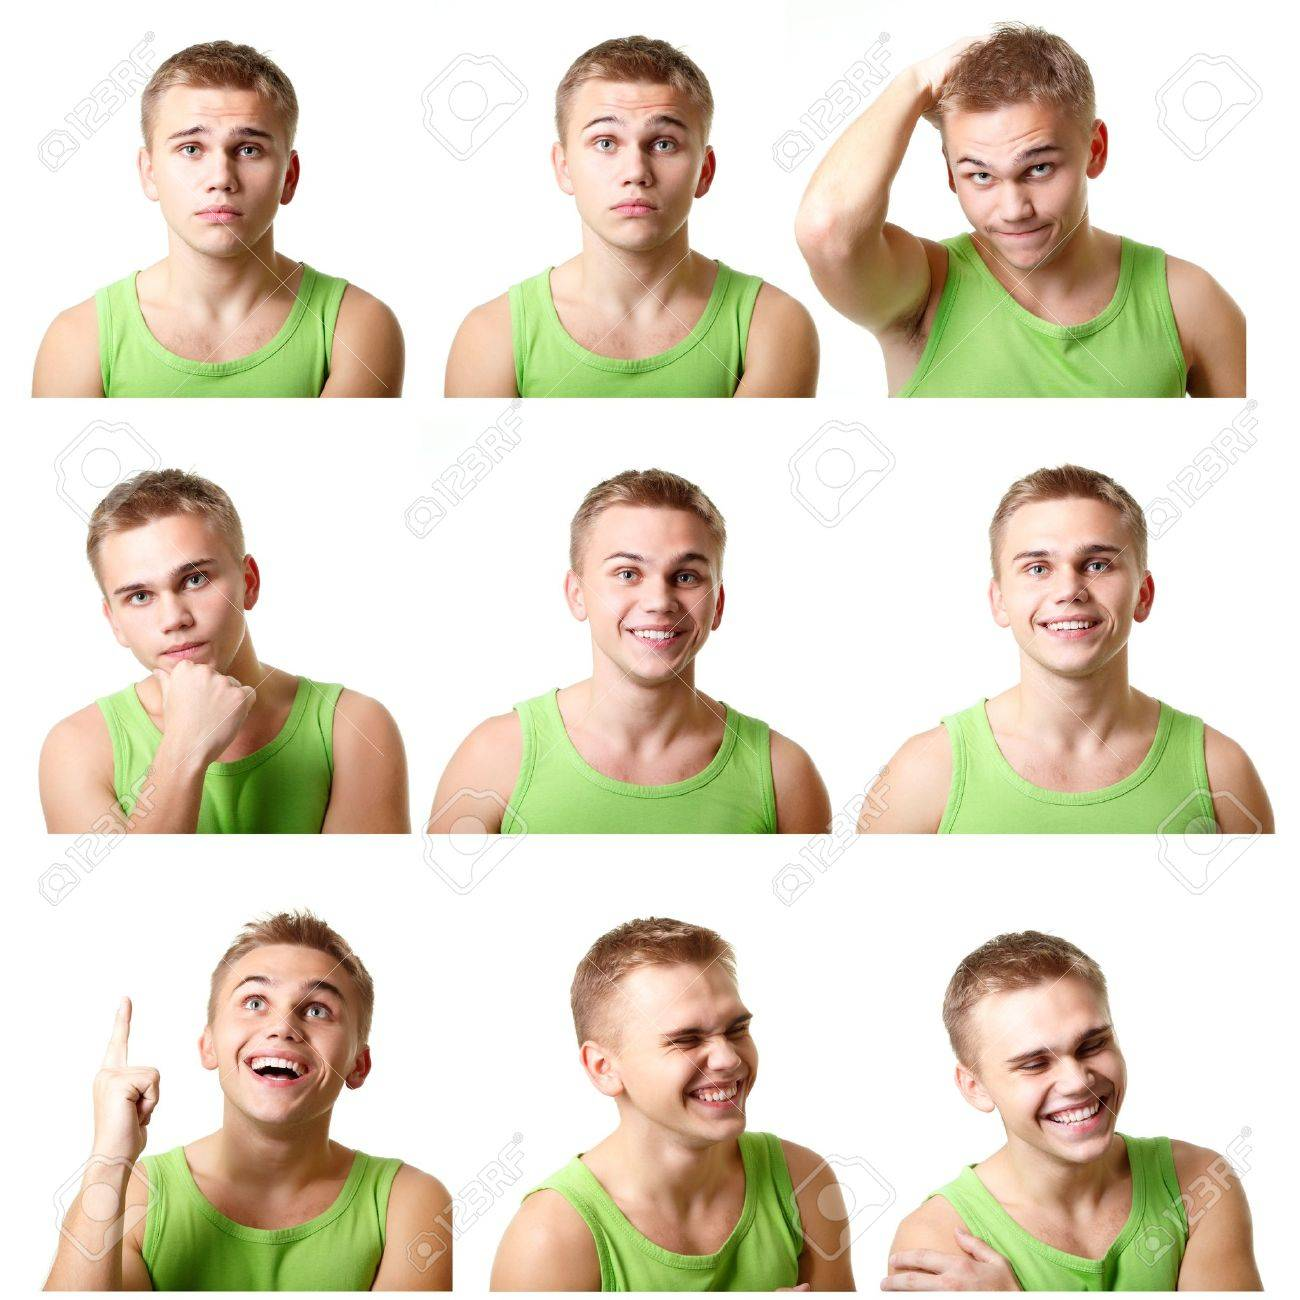 young man emotional faces, expressions set over white background - 18207646